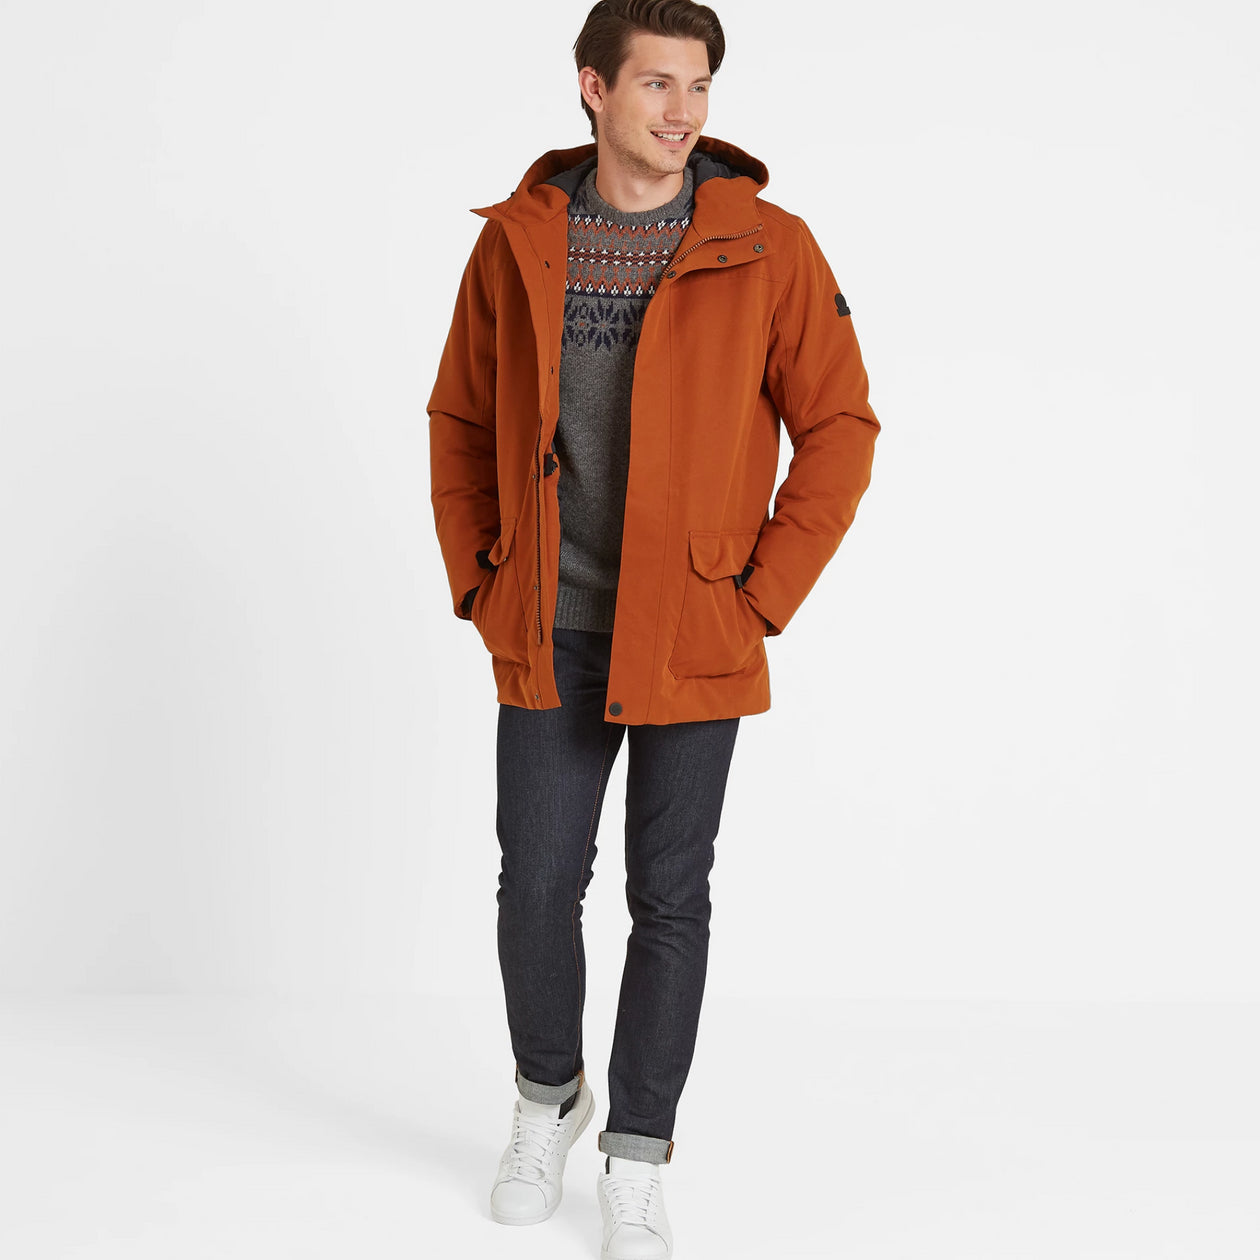 Dight Mens Waterproof Parka - Amber image 4